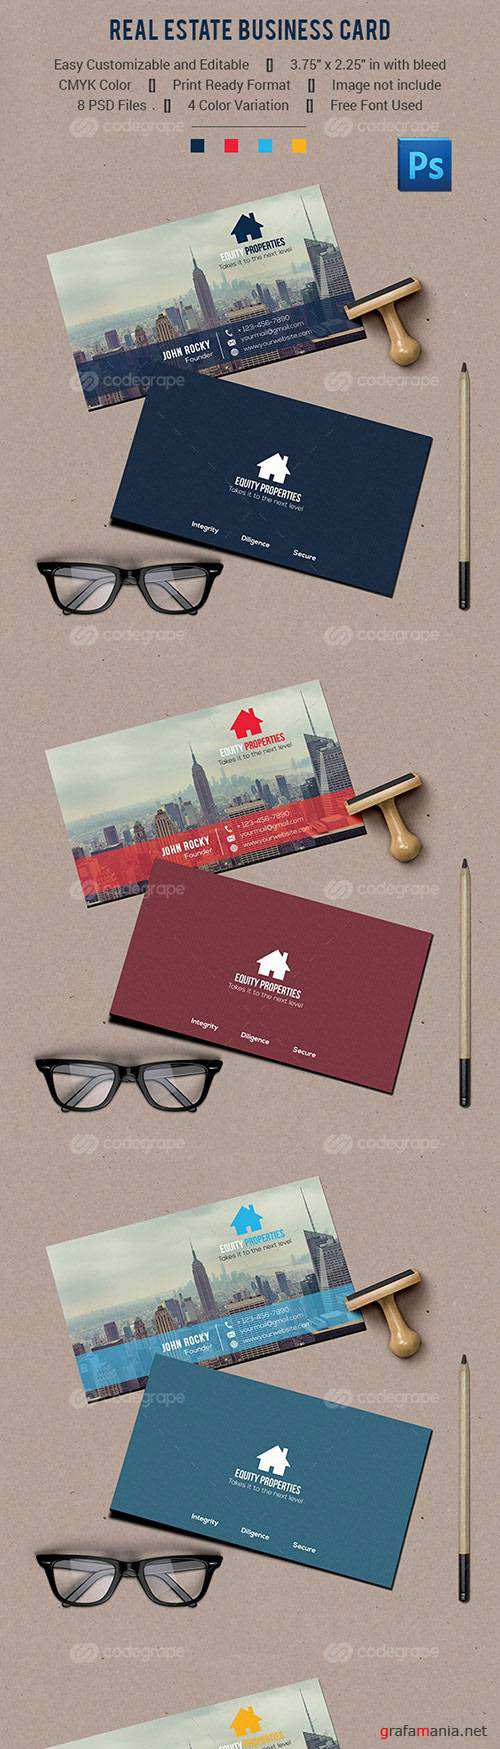 Real Estate Business Card 10880